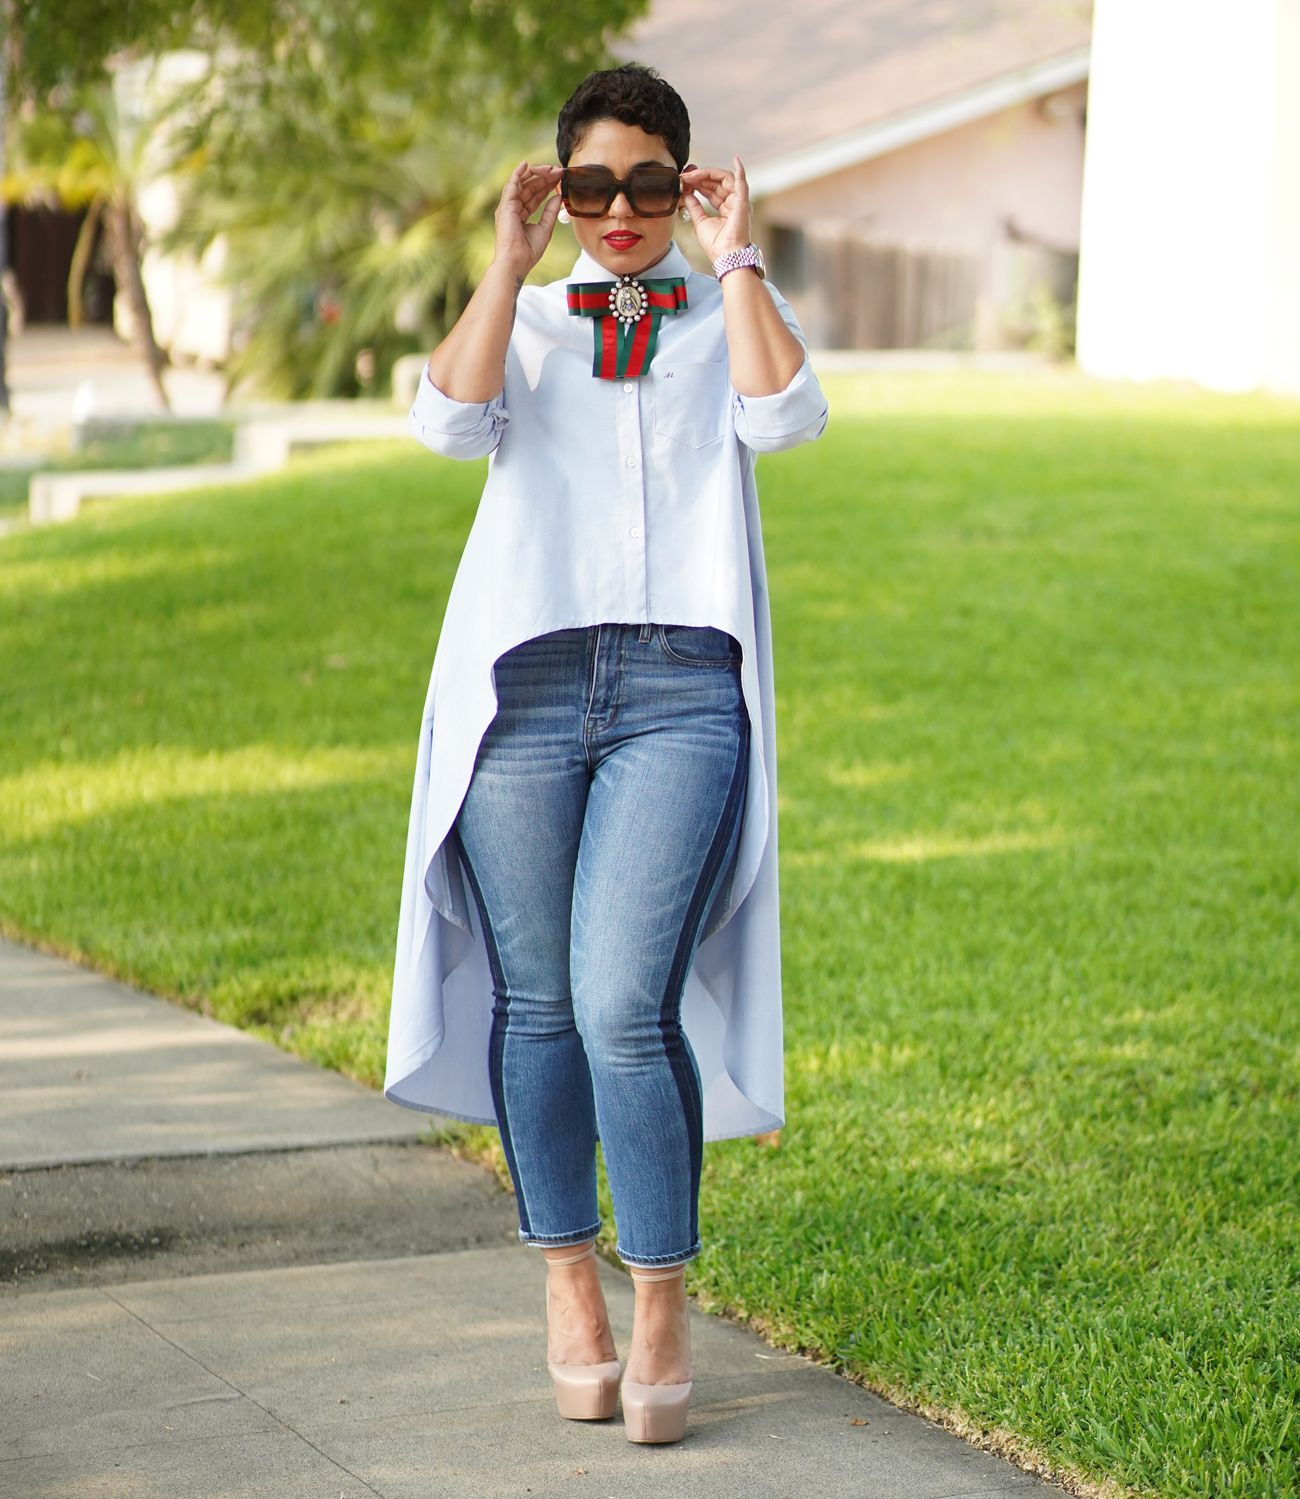 Diy High Low Button Up Shirt Using The Katie Pdf Mimi G Style Fashion Fashion Tops Chic Outfits